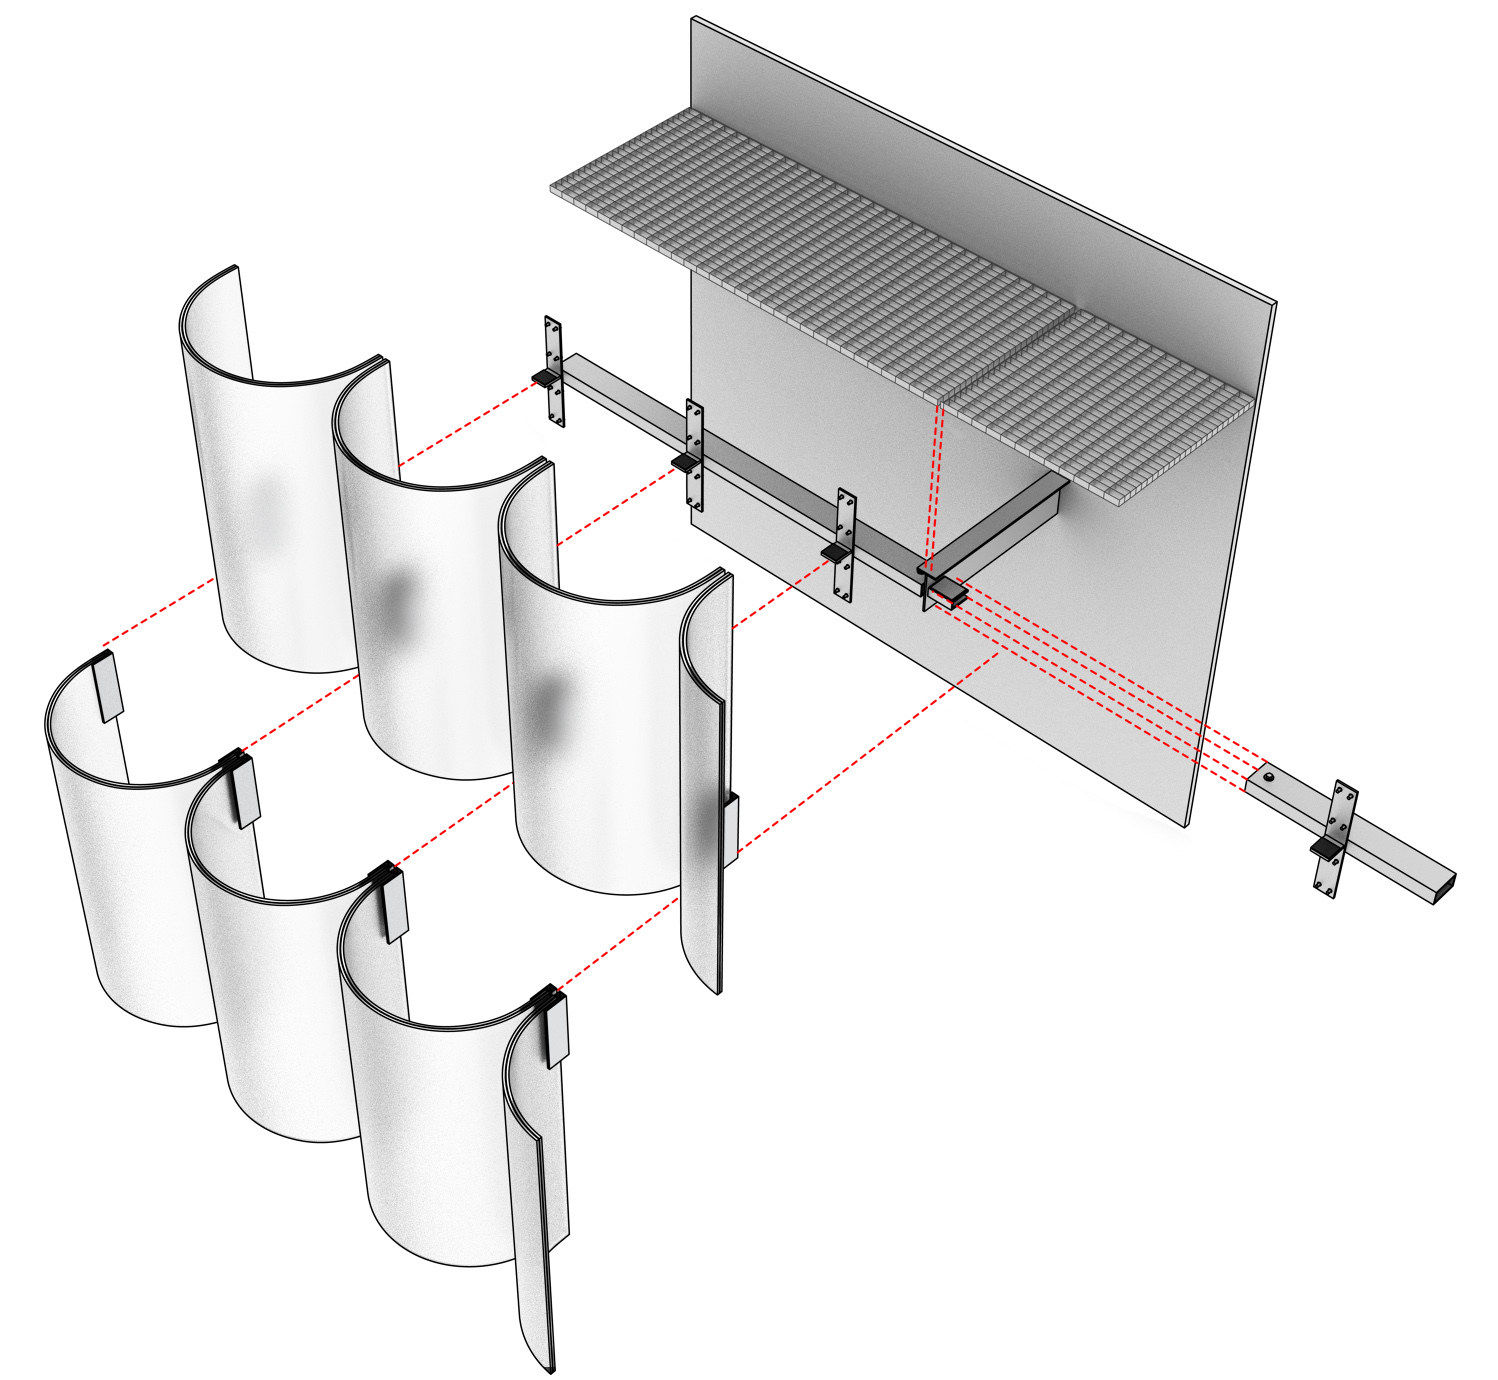 Diagram of the facade system, and how the glass tubes are held to the primary structure